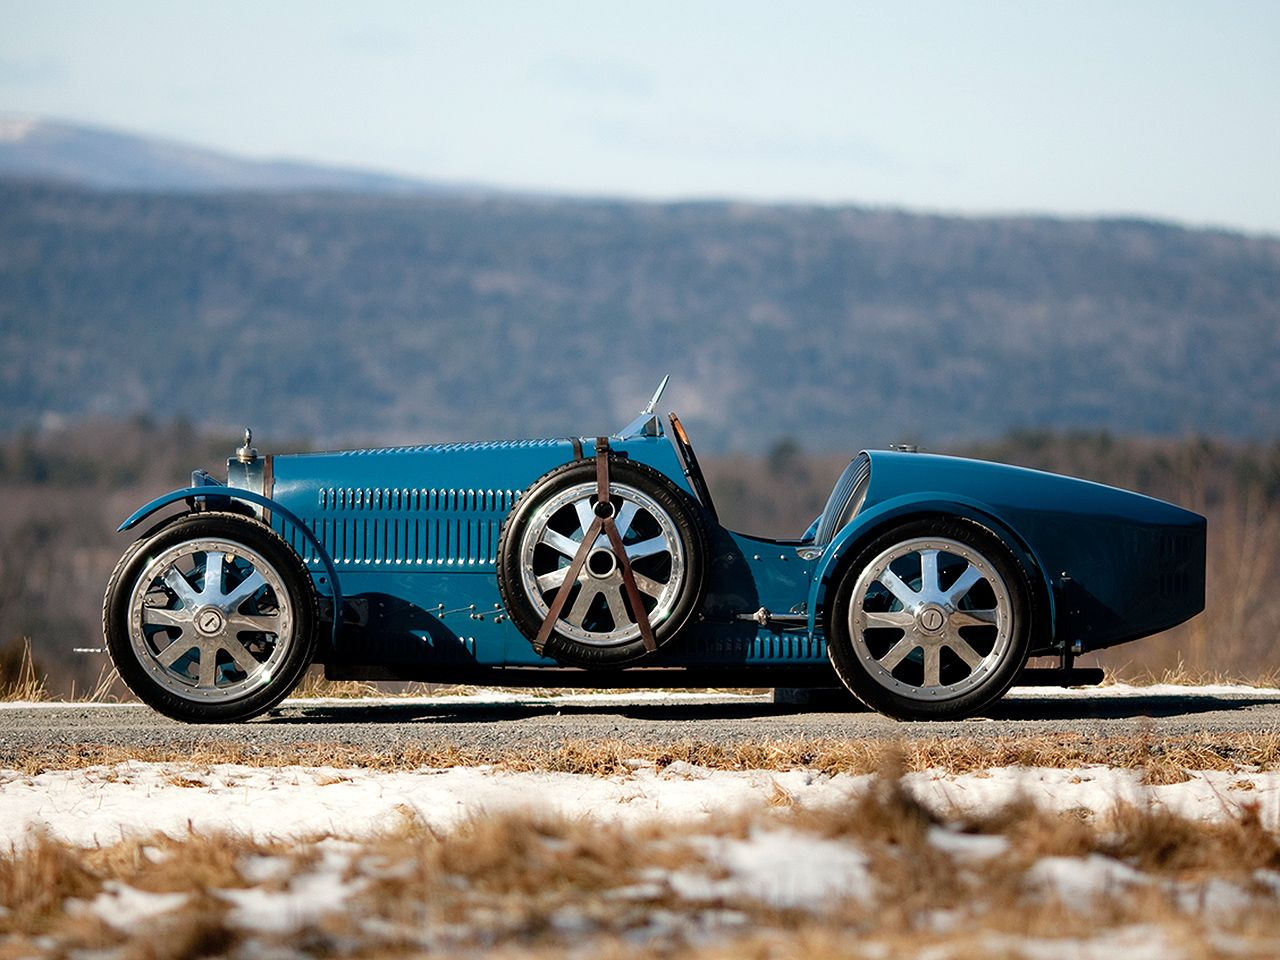 cool.  I don't know if it is, but it looks like an old Bugatti, or maybe even an…